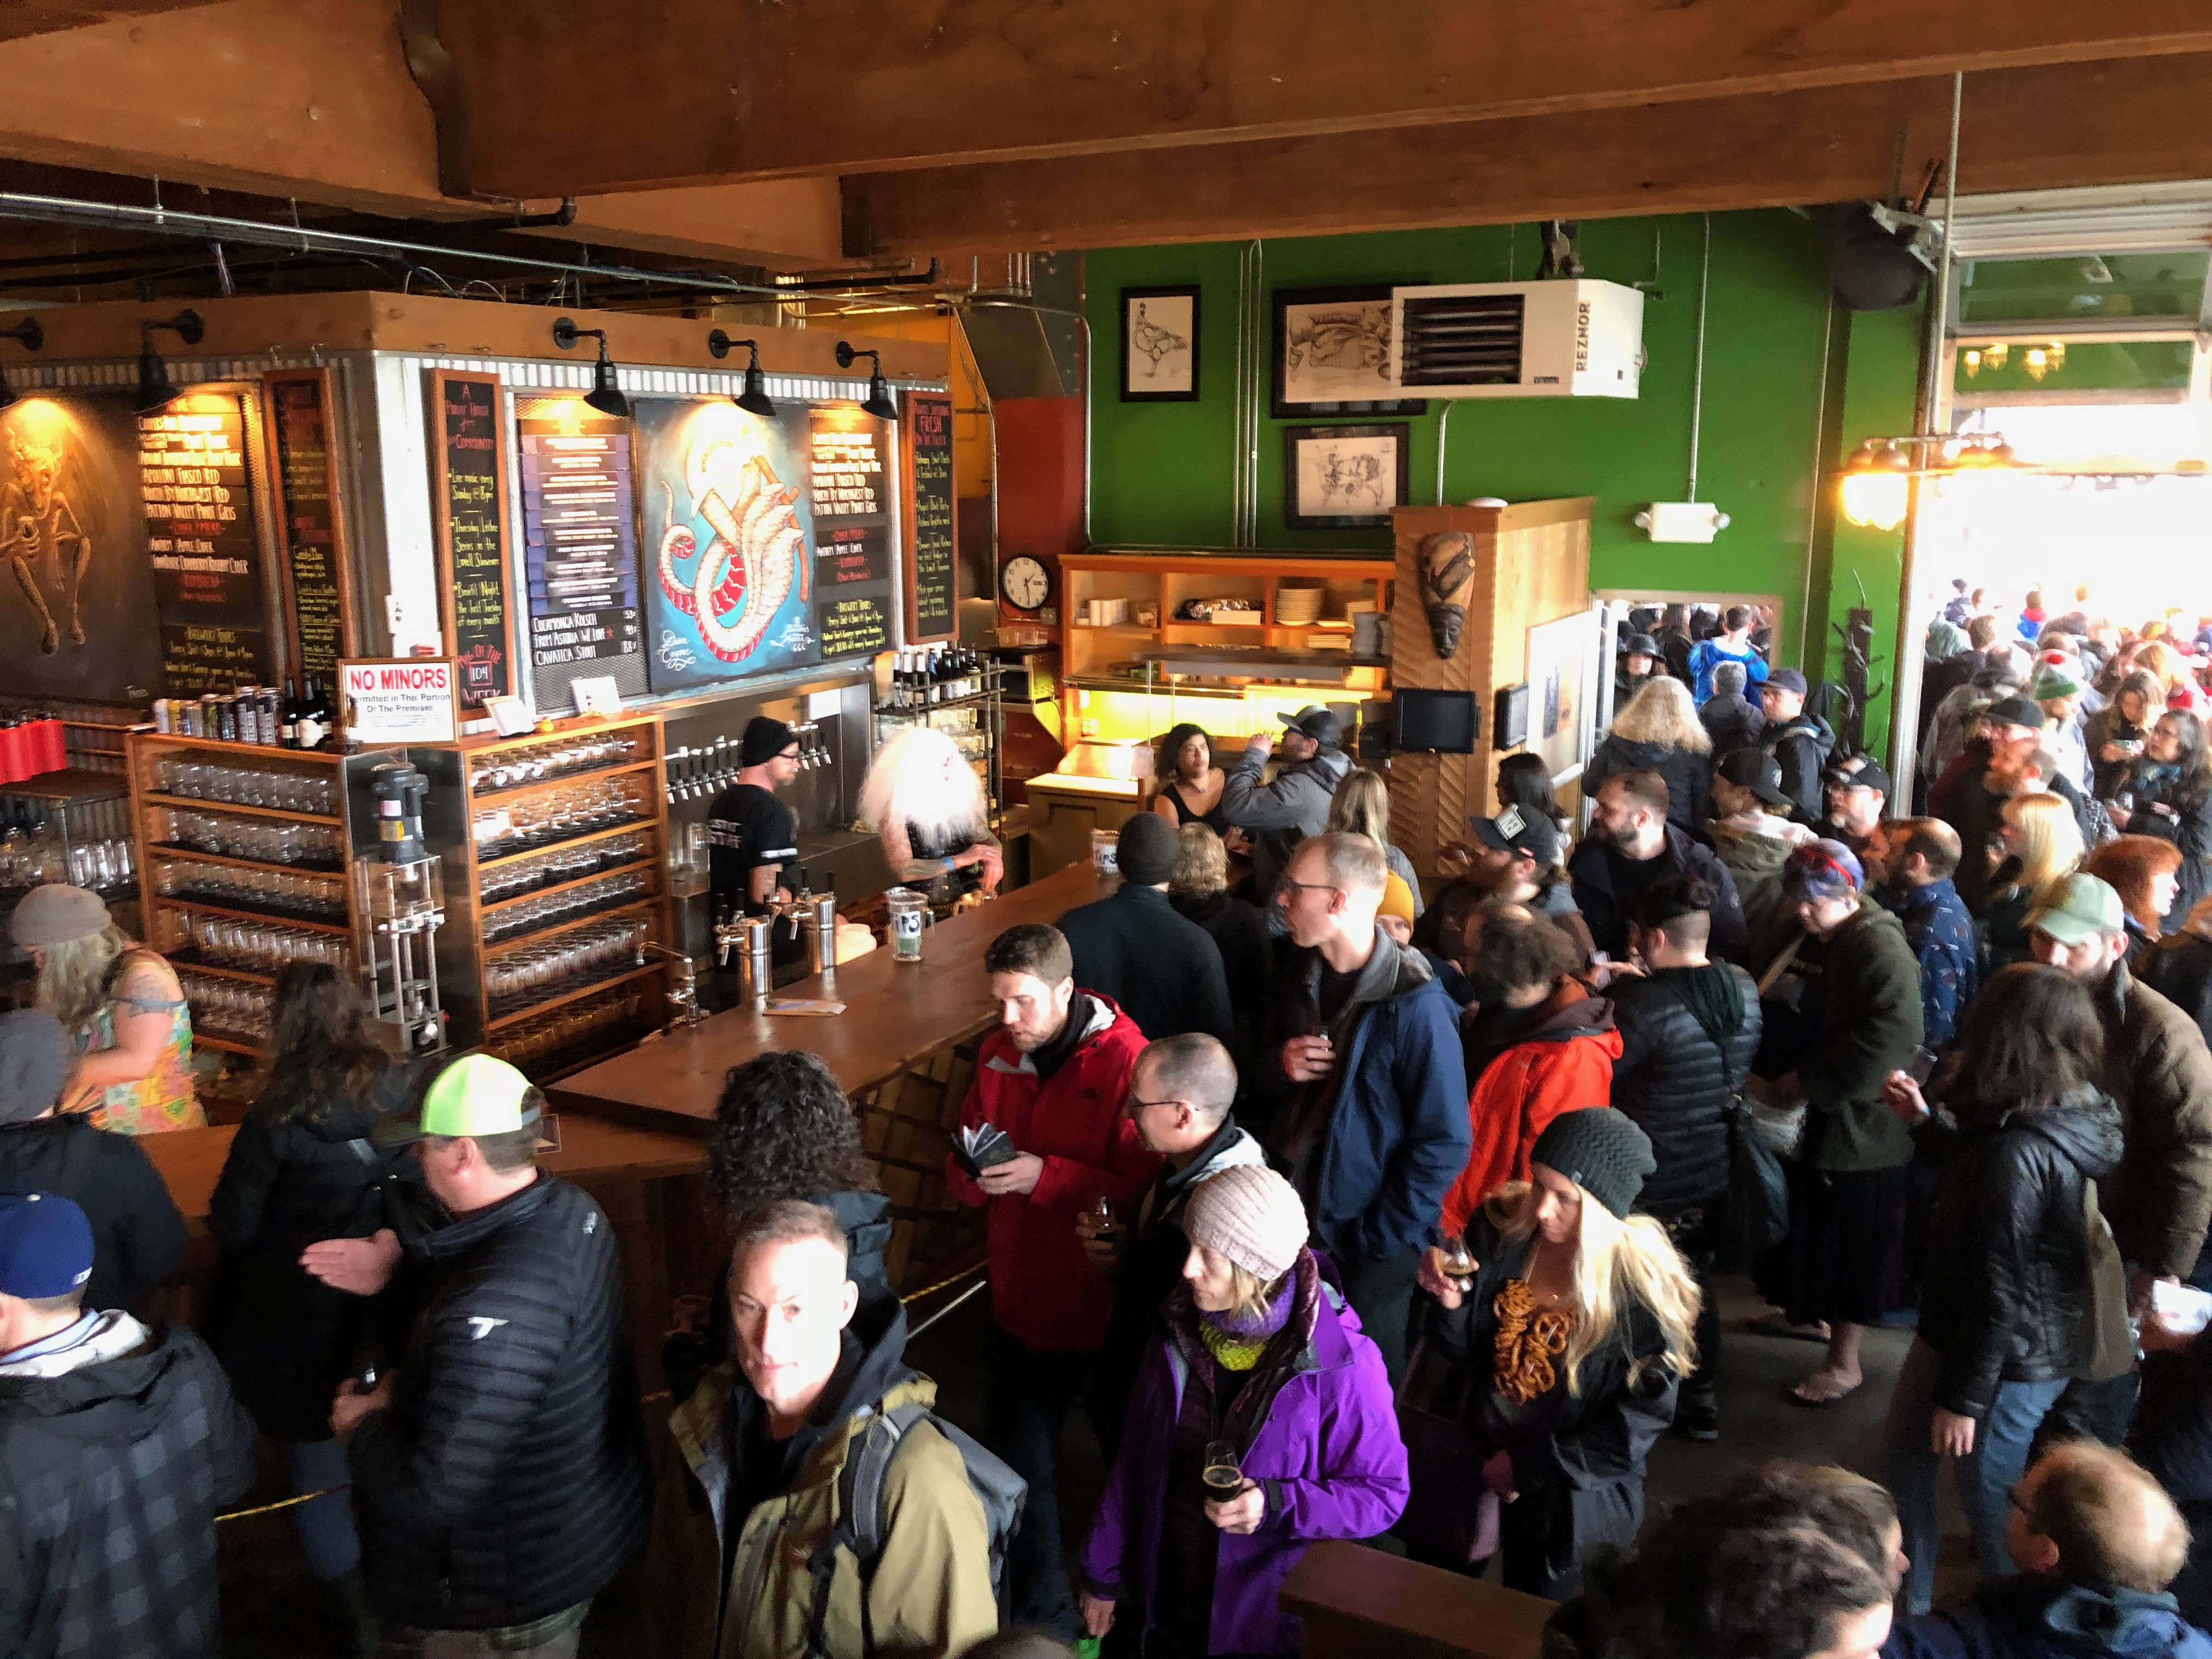 Festival goers at the 2018 Festival of Dark Arts at Fort George Brewery.